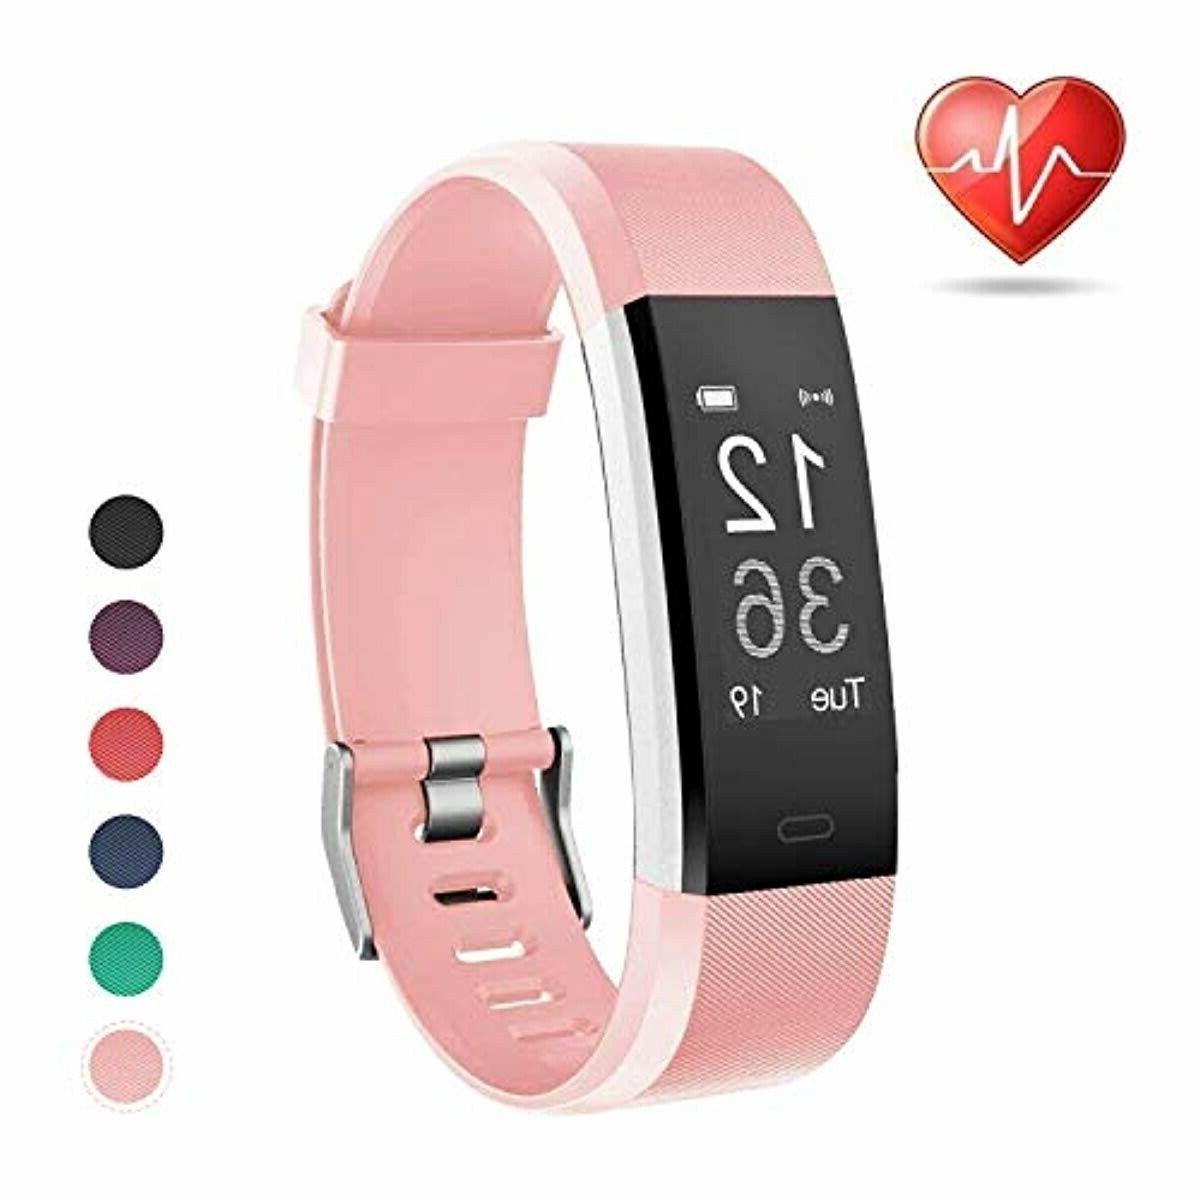 fitness activity tracker by heart rate monitor